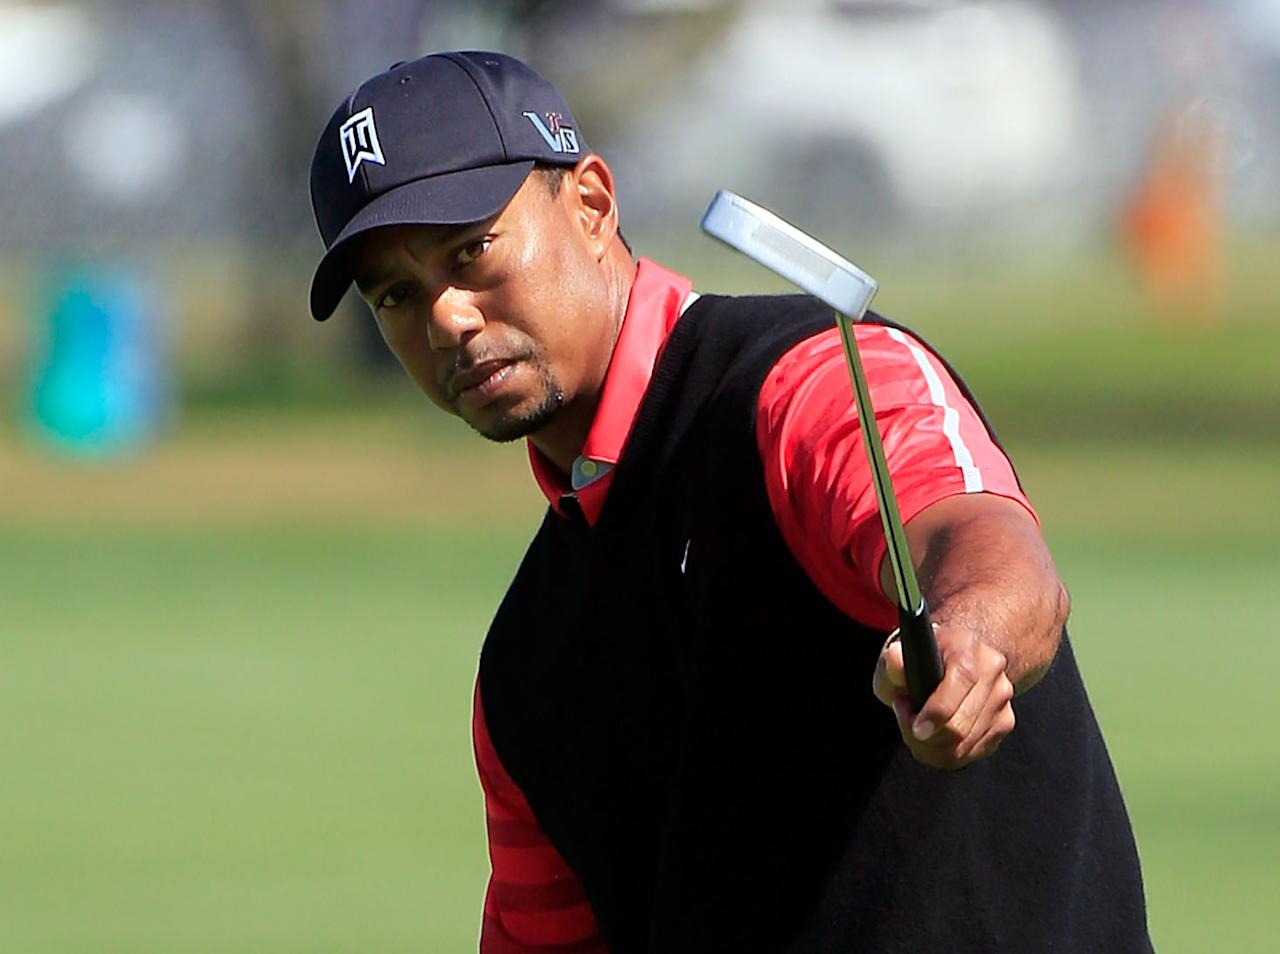 ORLANDO, FL - MARCH 25:  Tiger Woods reacts to a birdie attempt on the 9th hole during the final round of the Arnold Palmer Invitational presented by MasterCard at the Bay Hill Club and Lodge on March 25, 2013 in Orlando, Florida.  (Photo by Sam Greenwood/Getty Images)